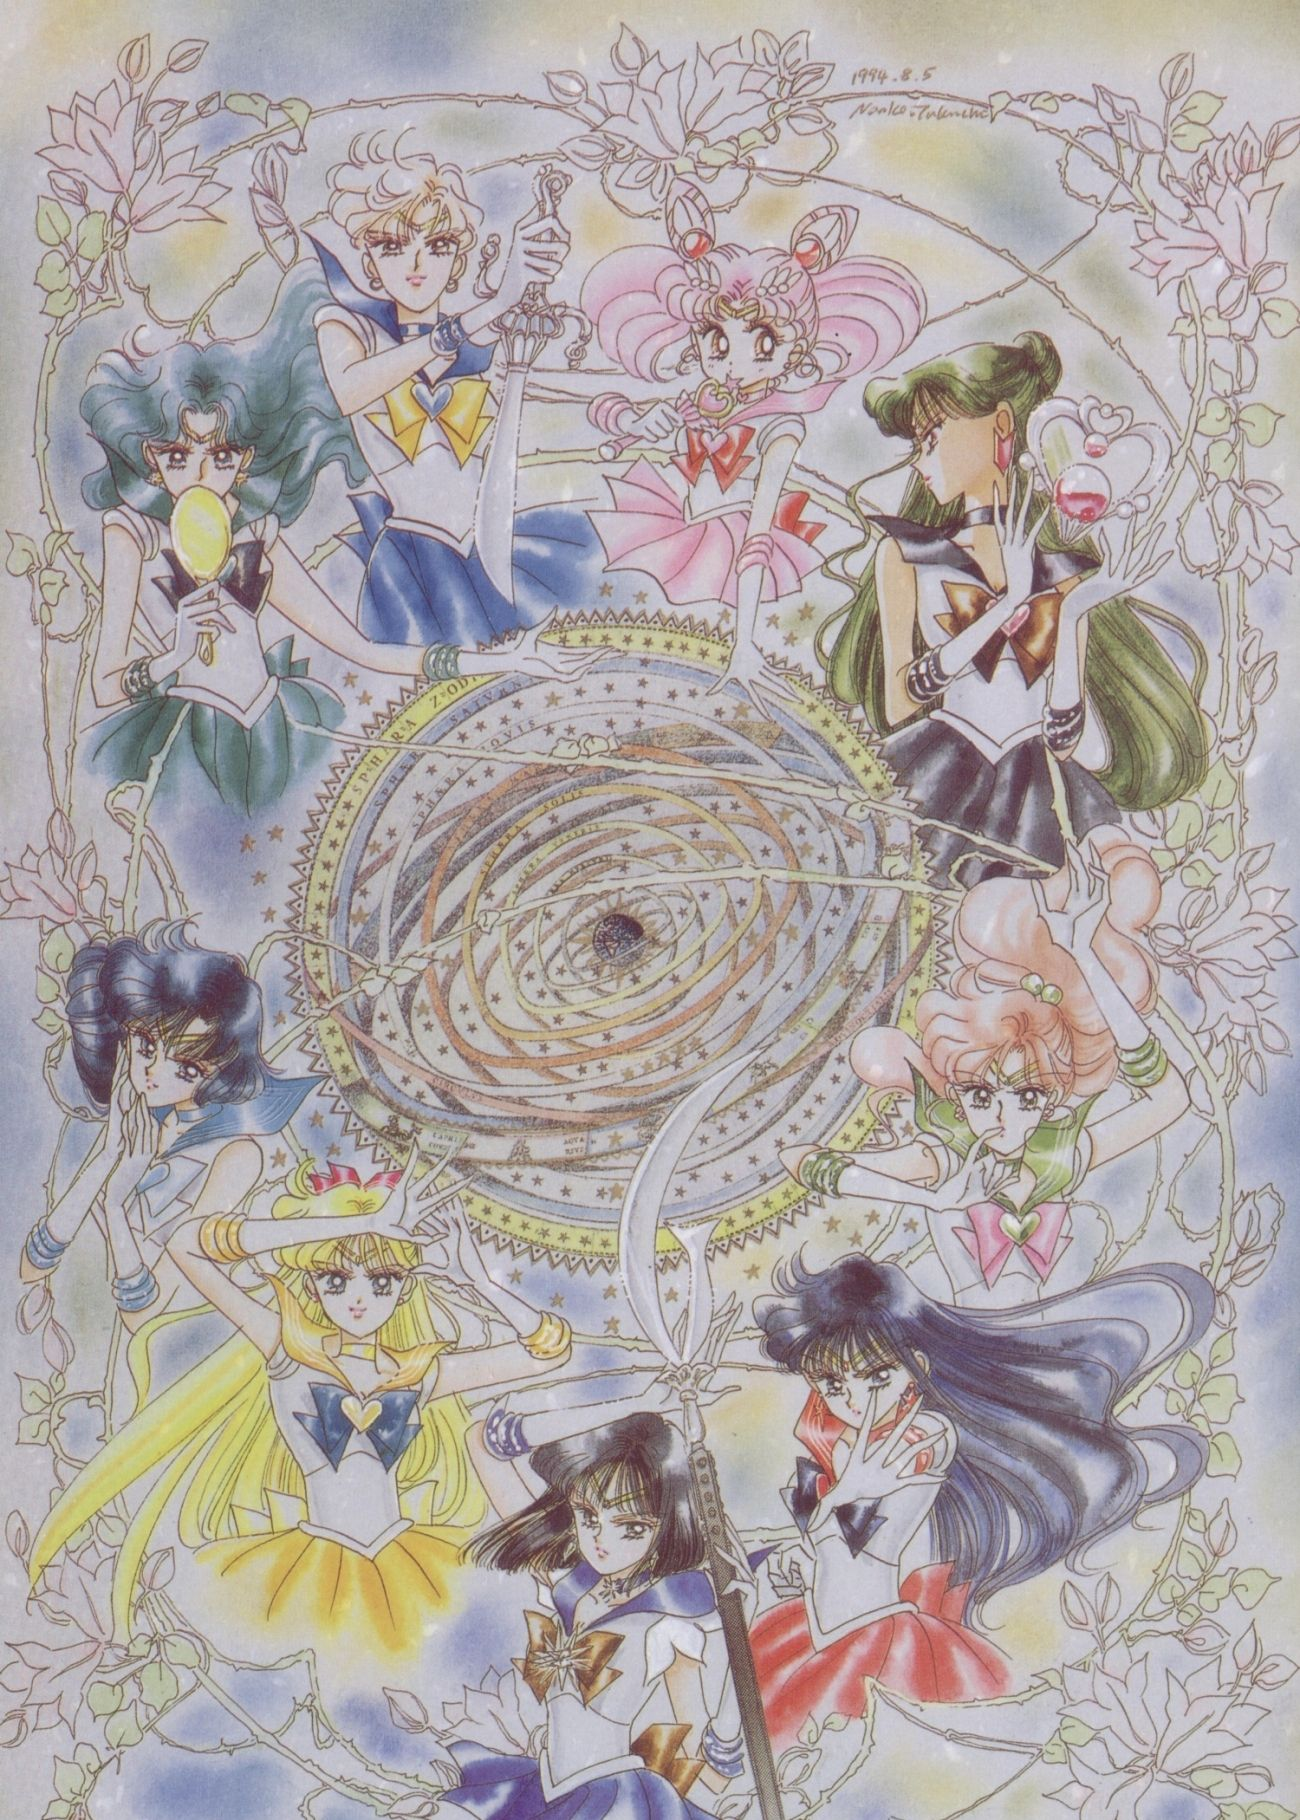 From Pretty Soldier Sailor Moon Artbook Volume III ...